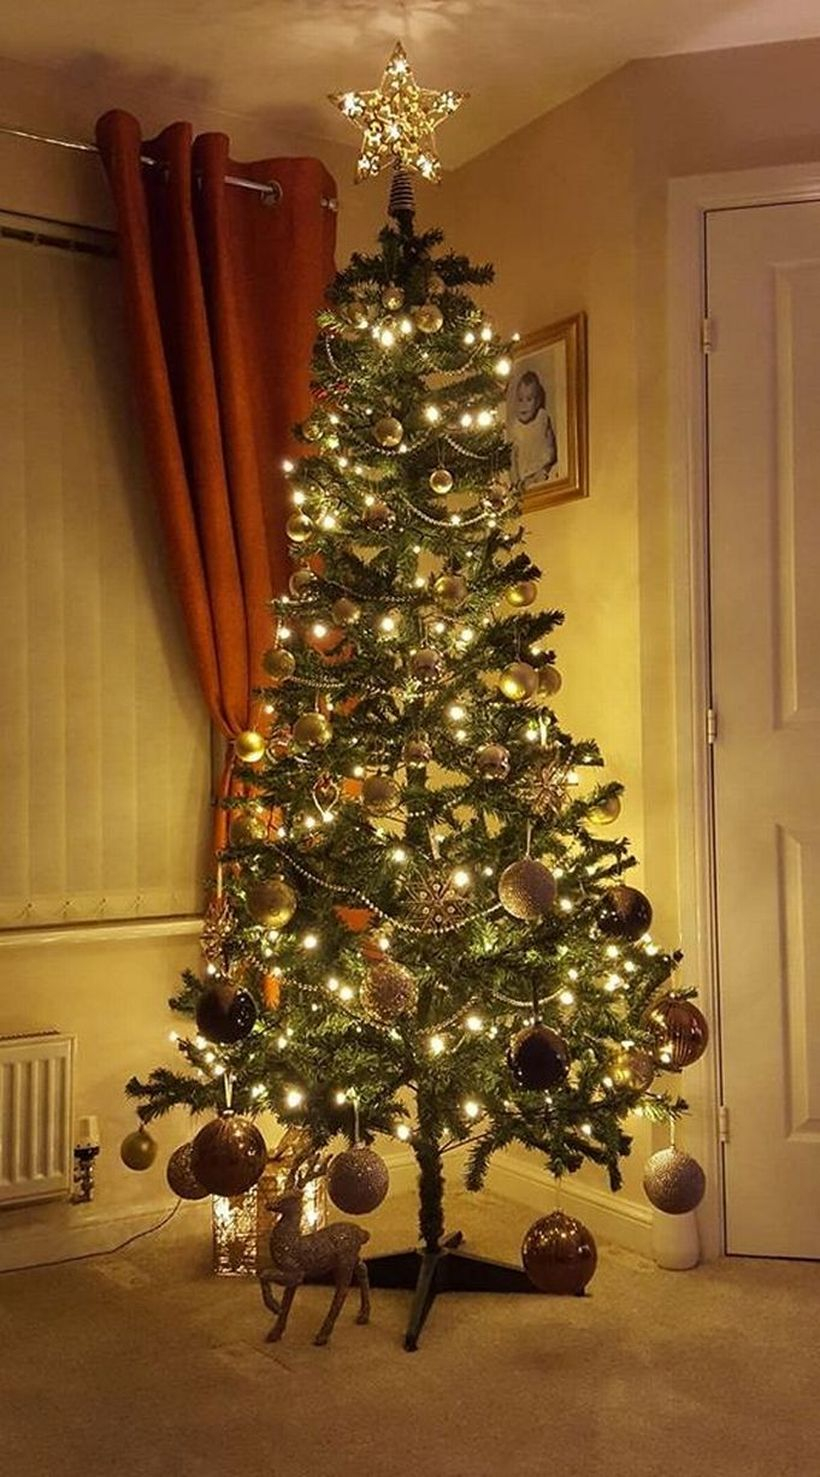 Green chrismast tree with gray ornament and yellow light ideas